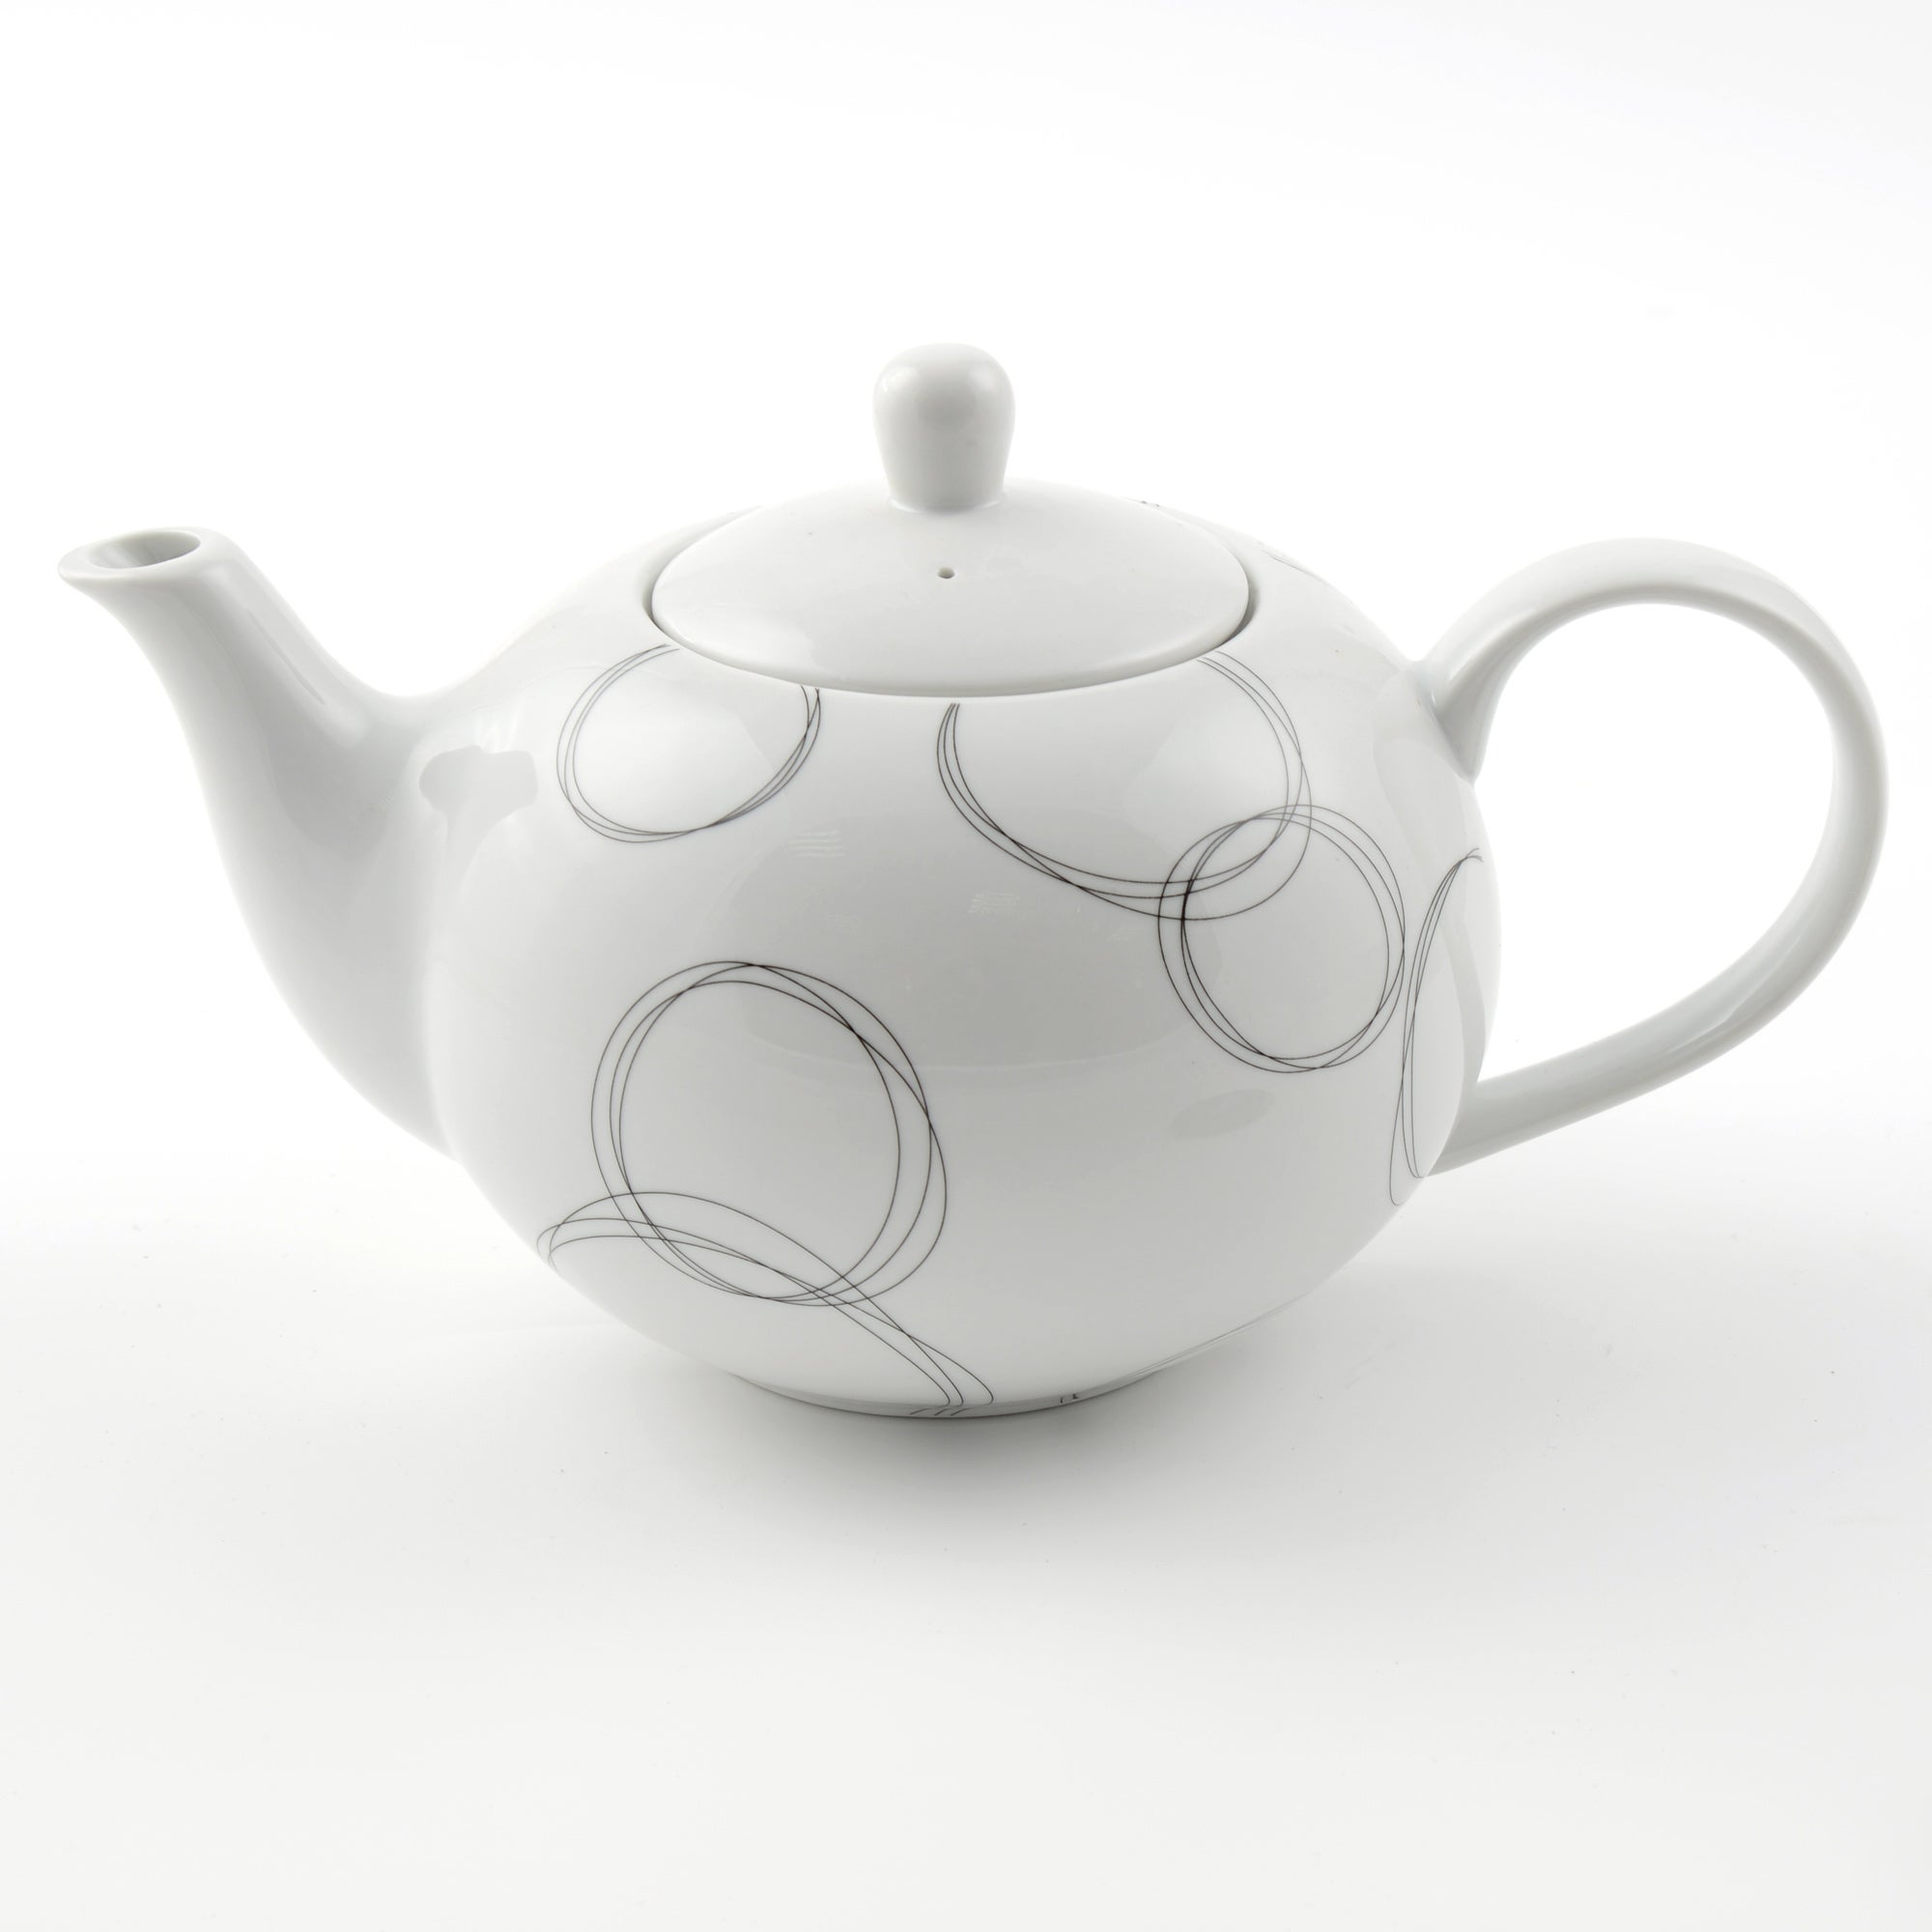 Ellipse Collection Tea Pot